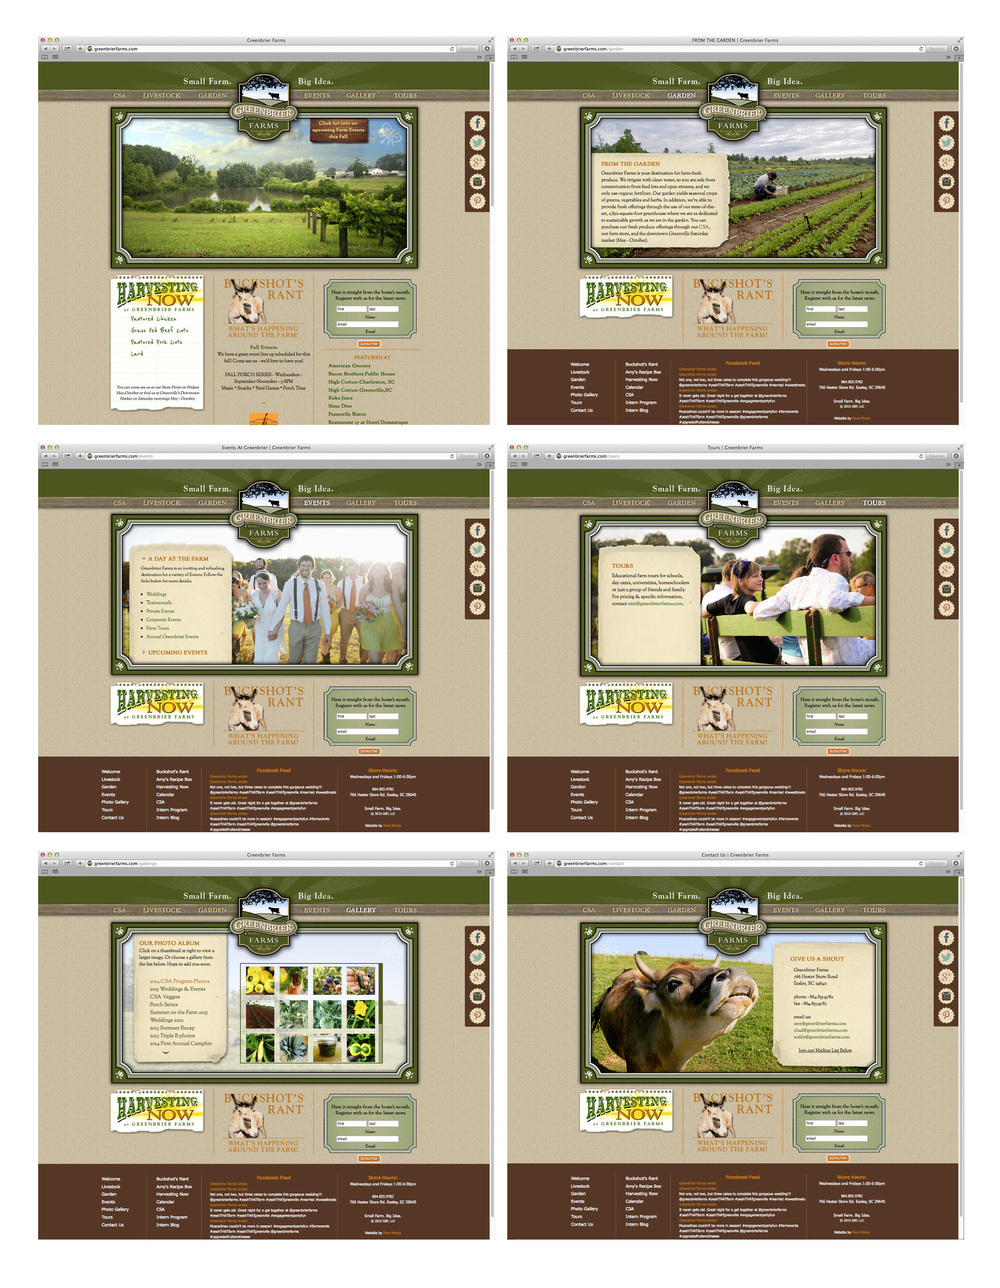 Greenbrier Farms Web Site